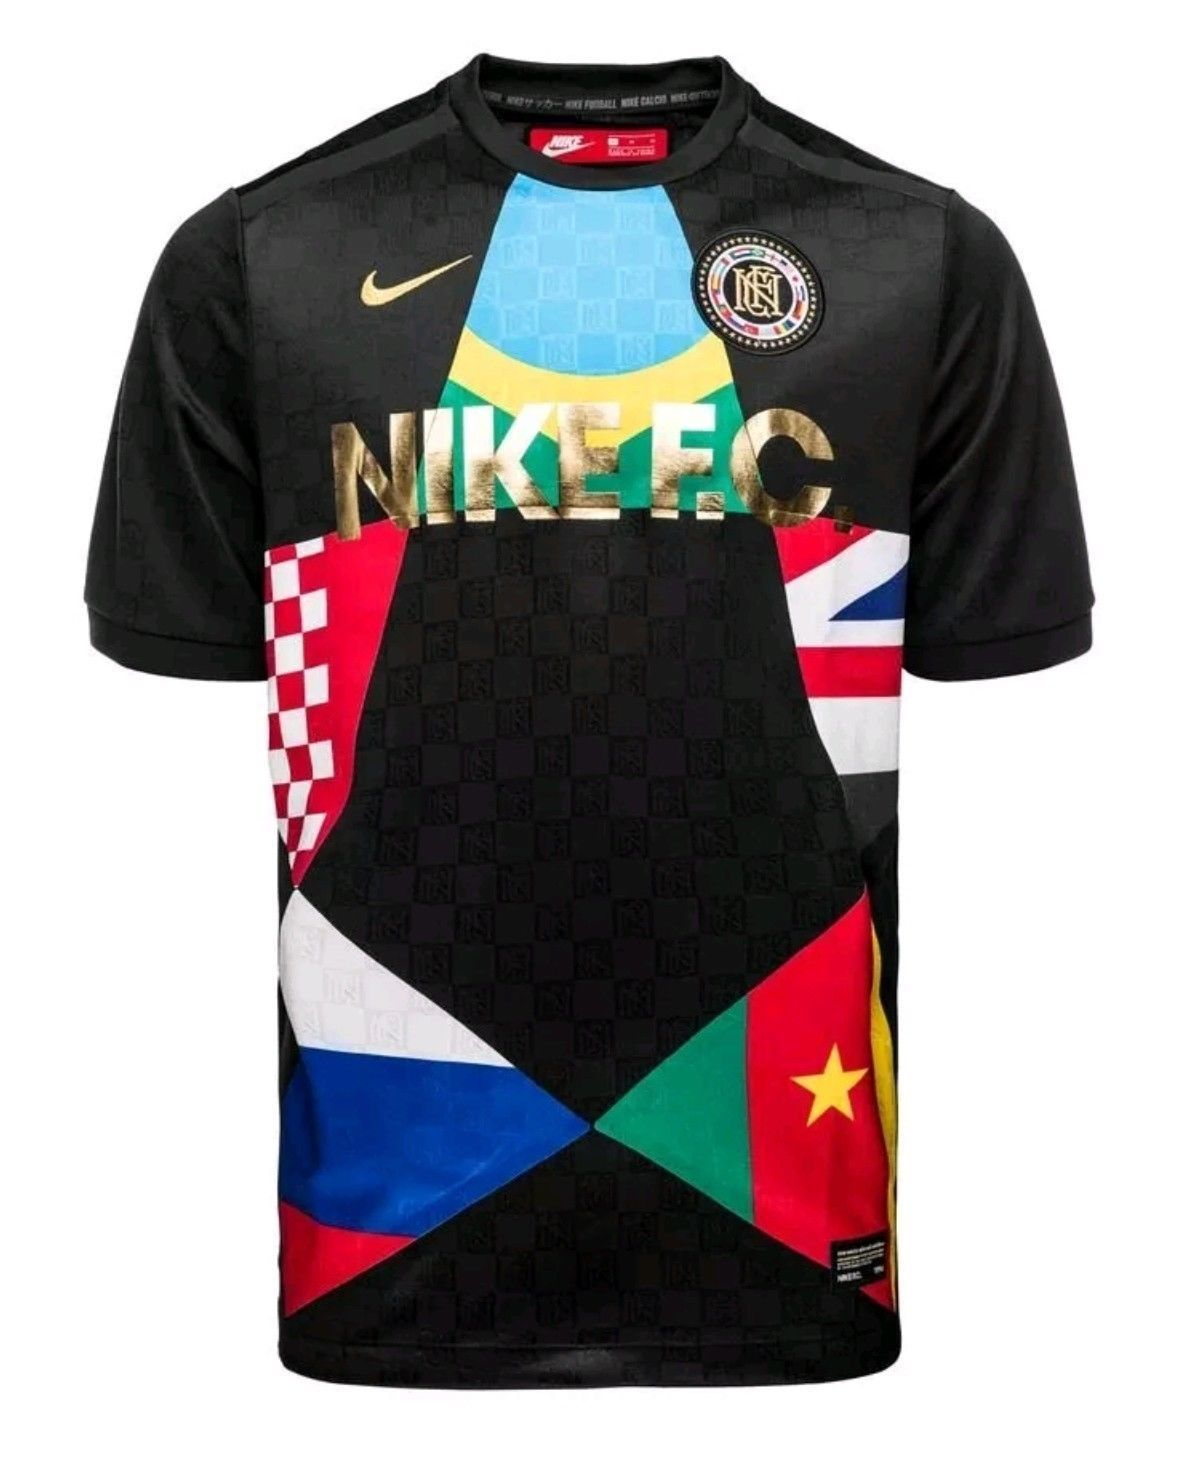 NIKE F.C. Football WORLD CUP 2018 SOCCER JERSEY BLACK MENS SZ Large 886872-014  Discount Price 79.95 Free Shipping Buy it Now e2a6cf3f4